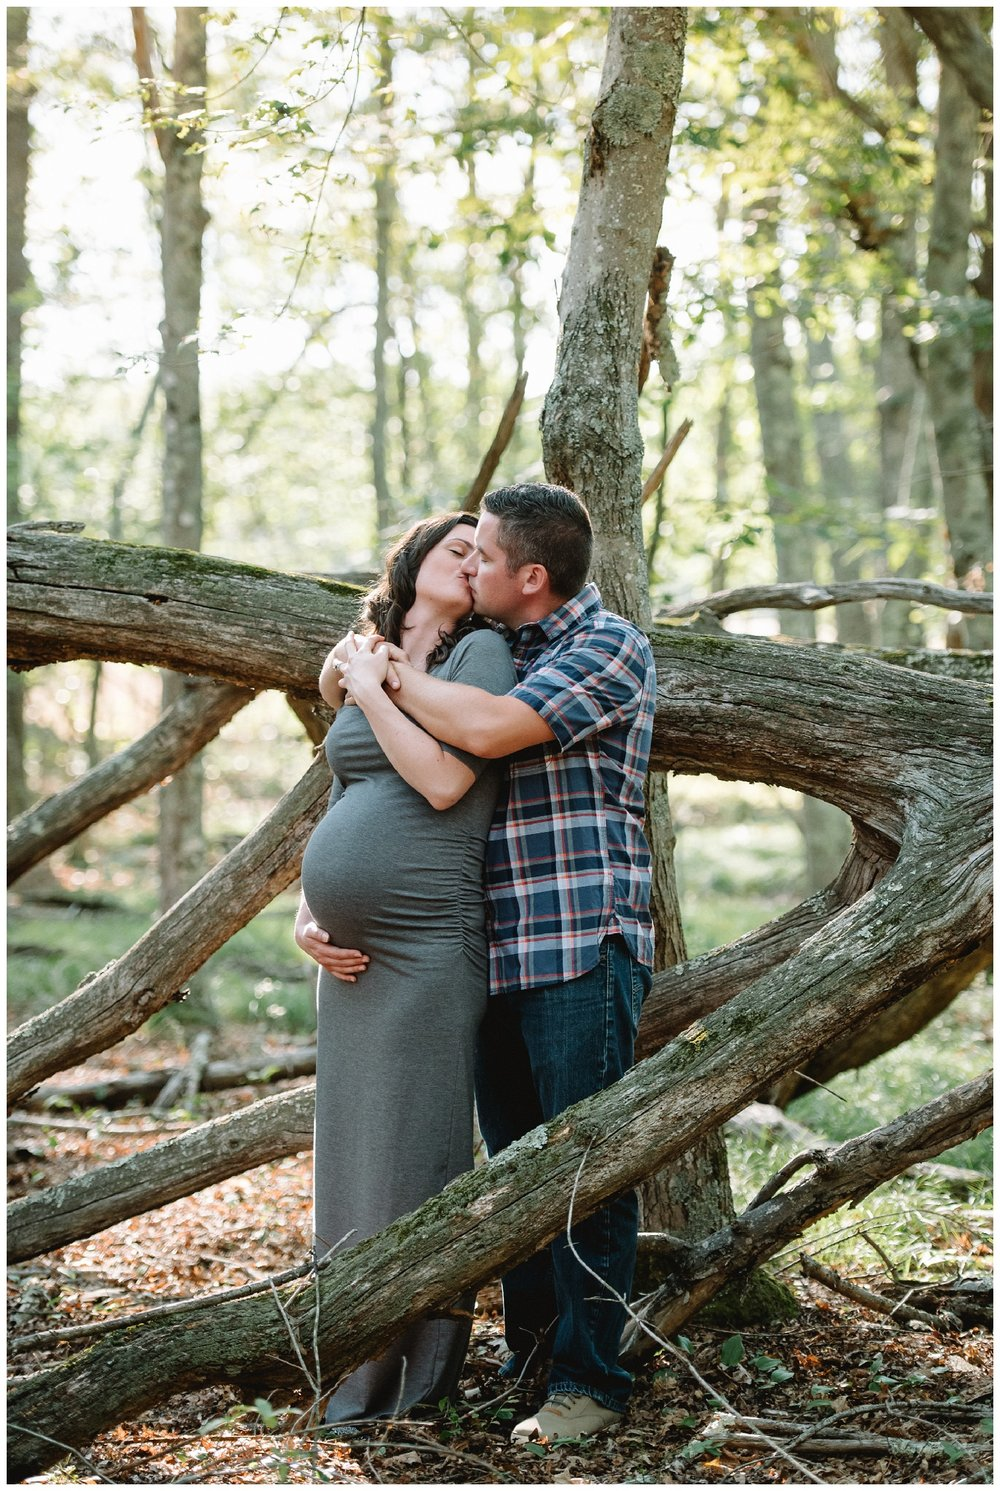 South Shore Maternity Session Cape Cod Maternity Photographer-8.jpg